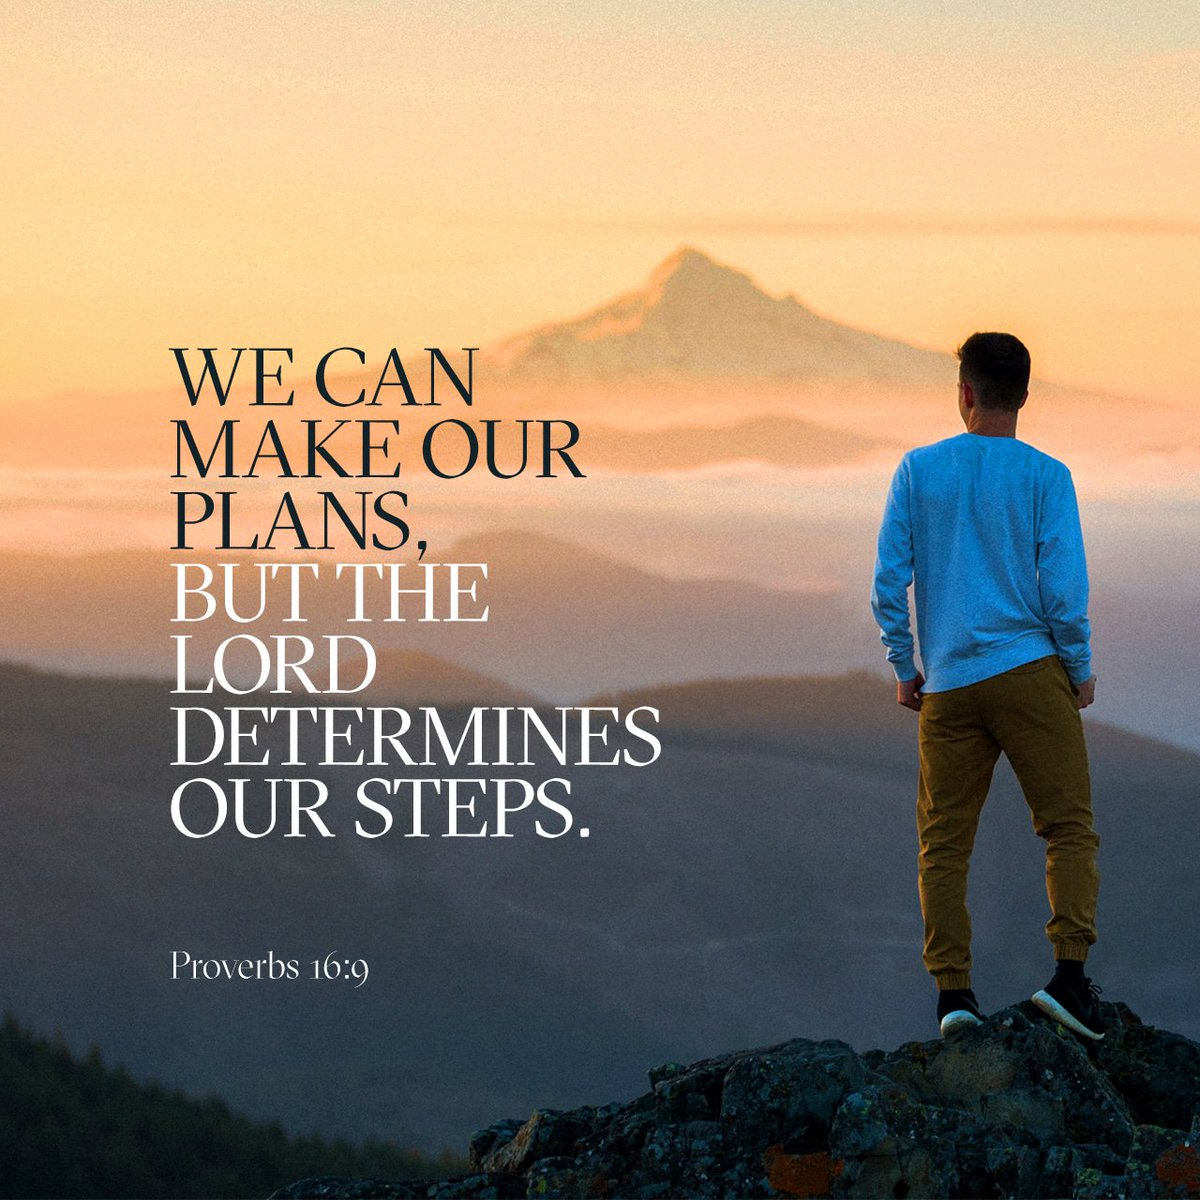 We can make our plans, but the LORD determines our steps. https://t.co/N5YzBWz3Yi https://t.co/UYqljU7GuS